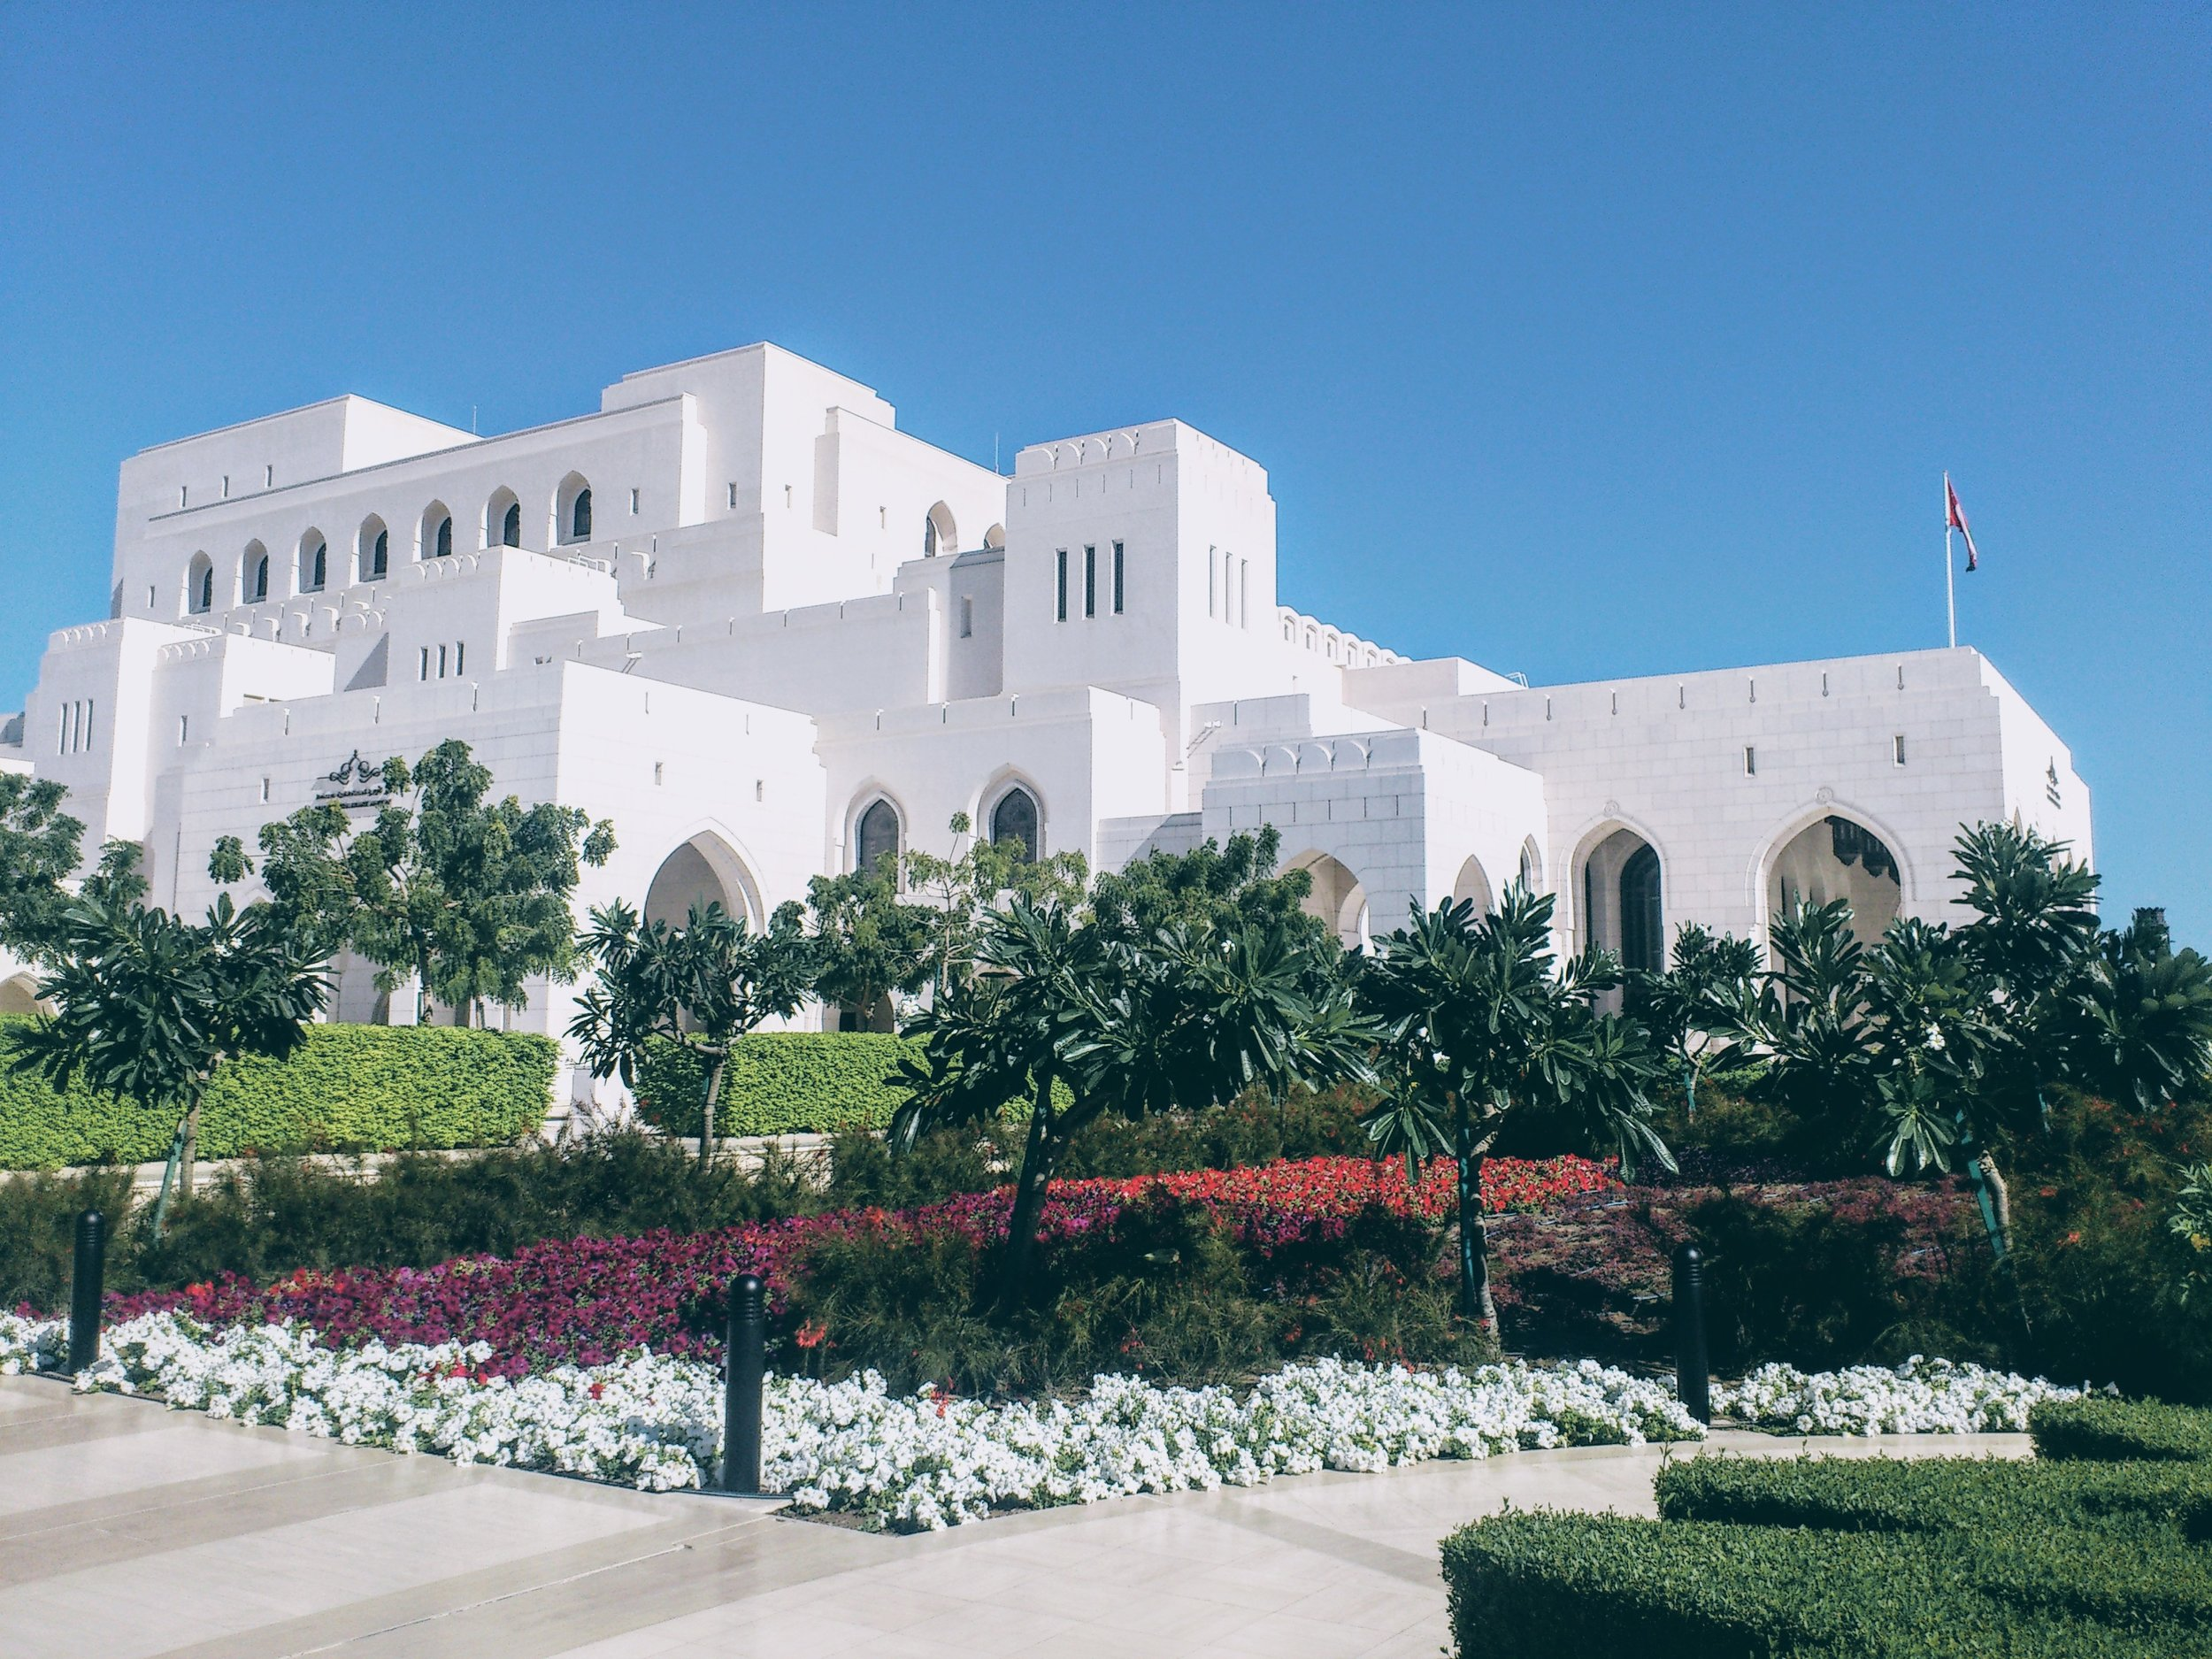 The Royal Opera House Muscat / Source: Wikimedia Commons